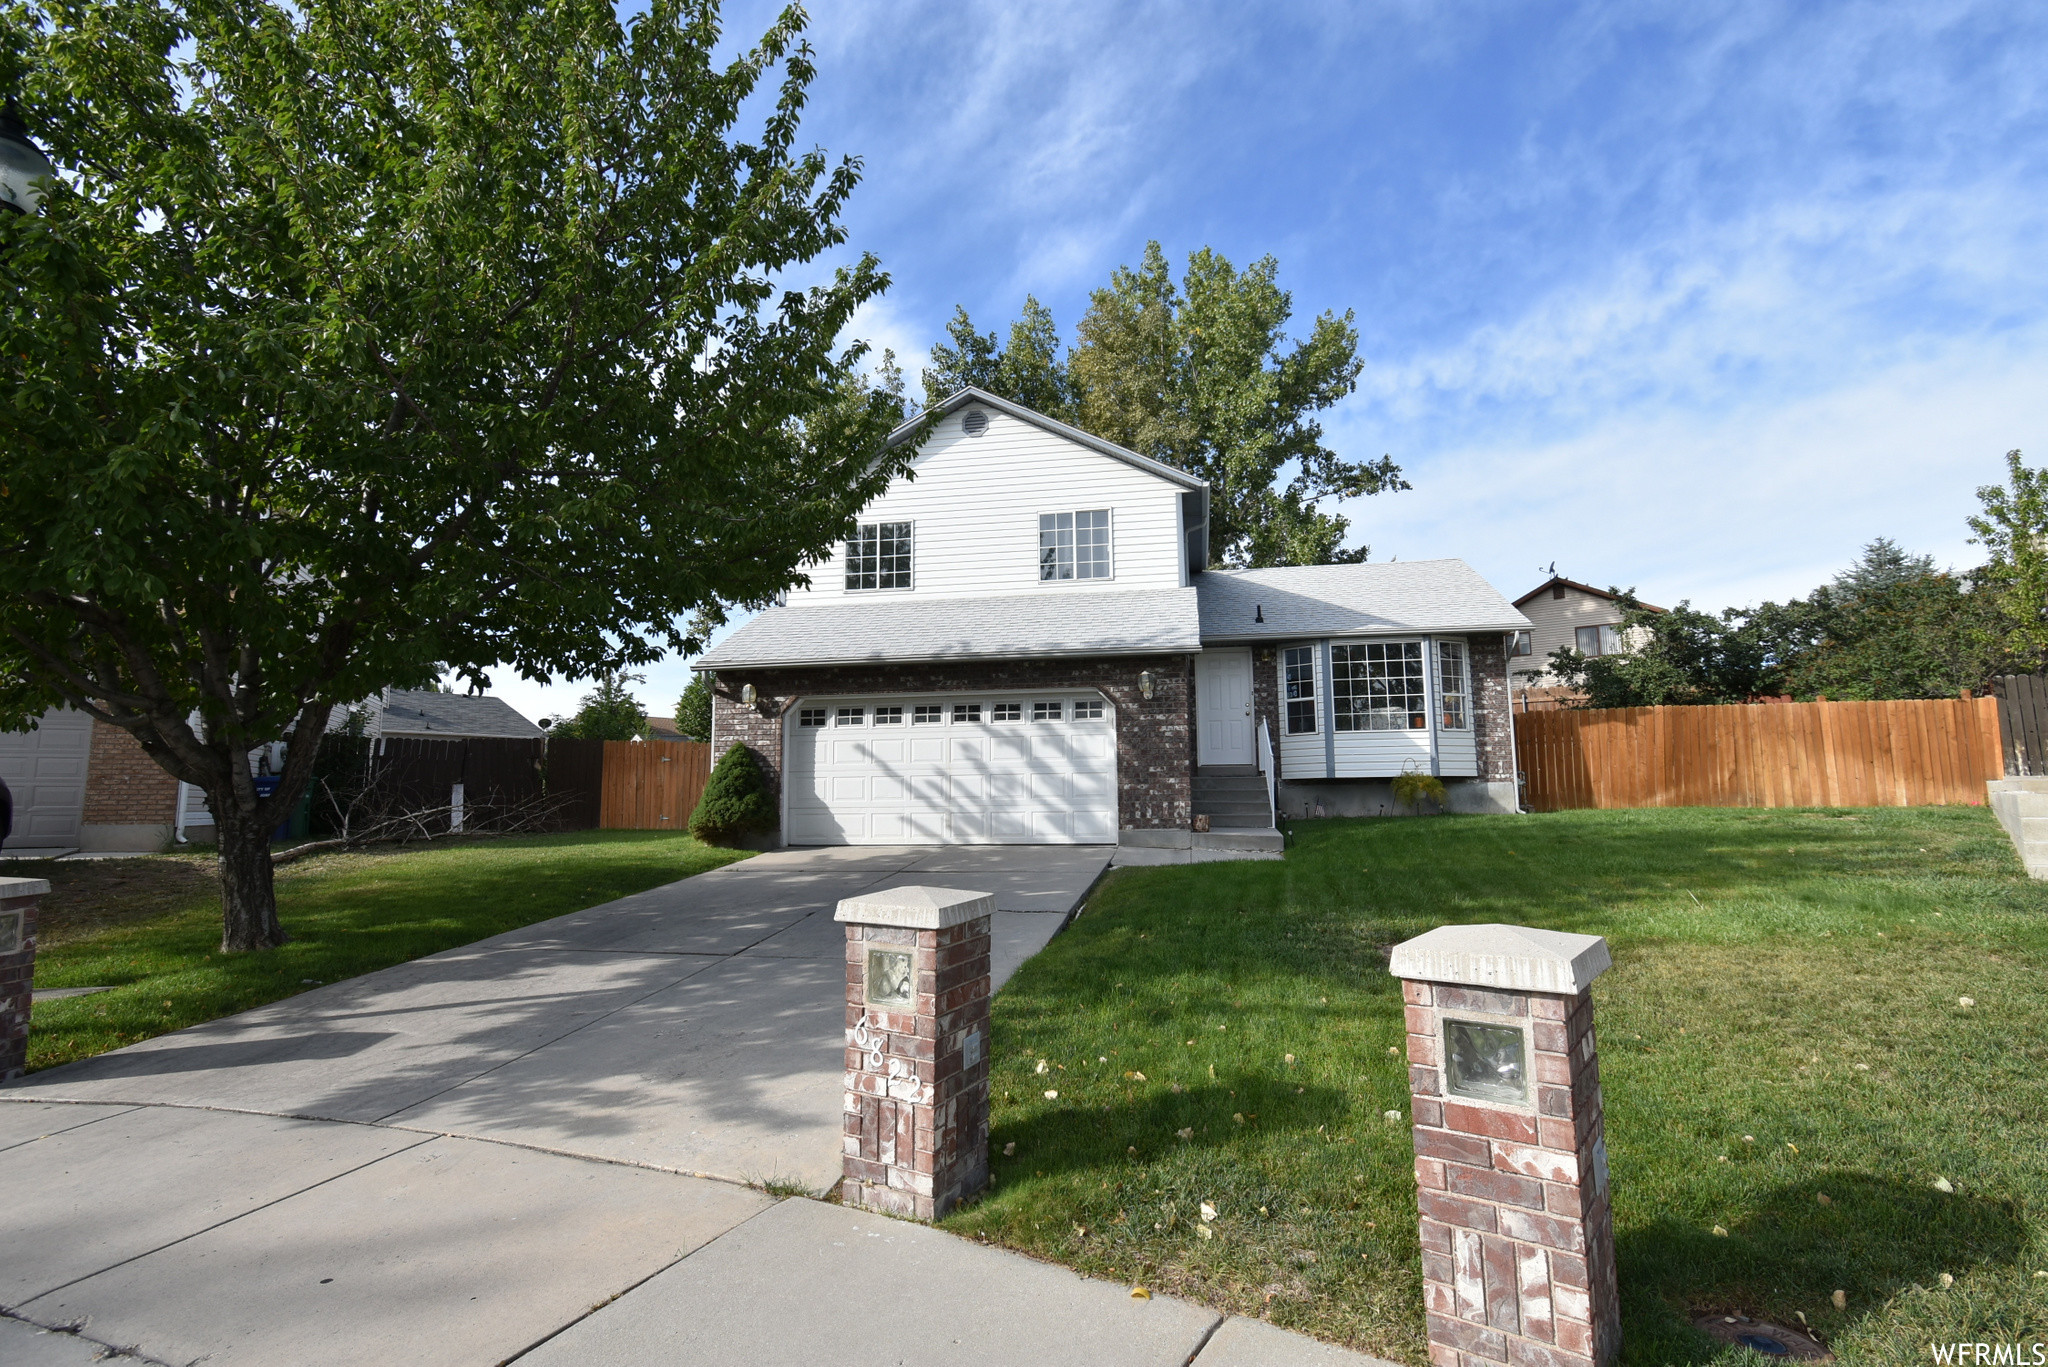 5-Bedroom House In Oquirrh Shadows